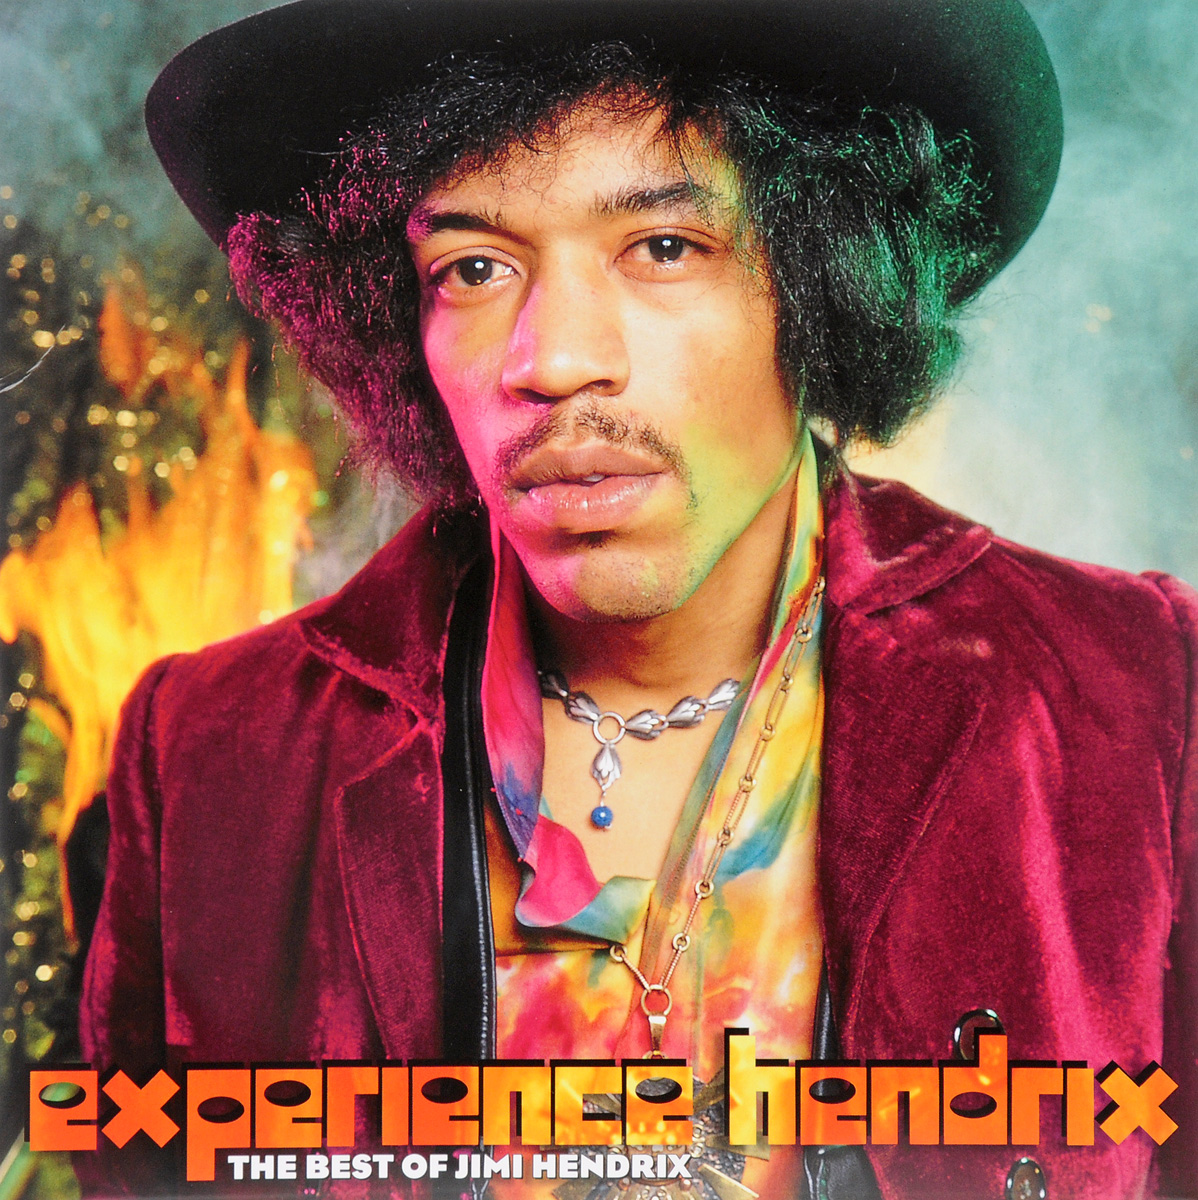 Джими Хендрикс Jimi Hendrix. Experience Hendrix. The Best Of Jimi Hendrix (2 LP) джими хендрикс jimi hendrix the cry of love lp